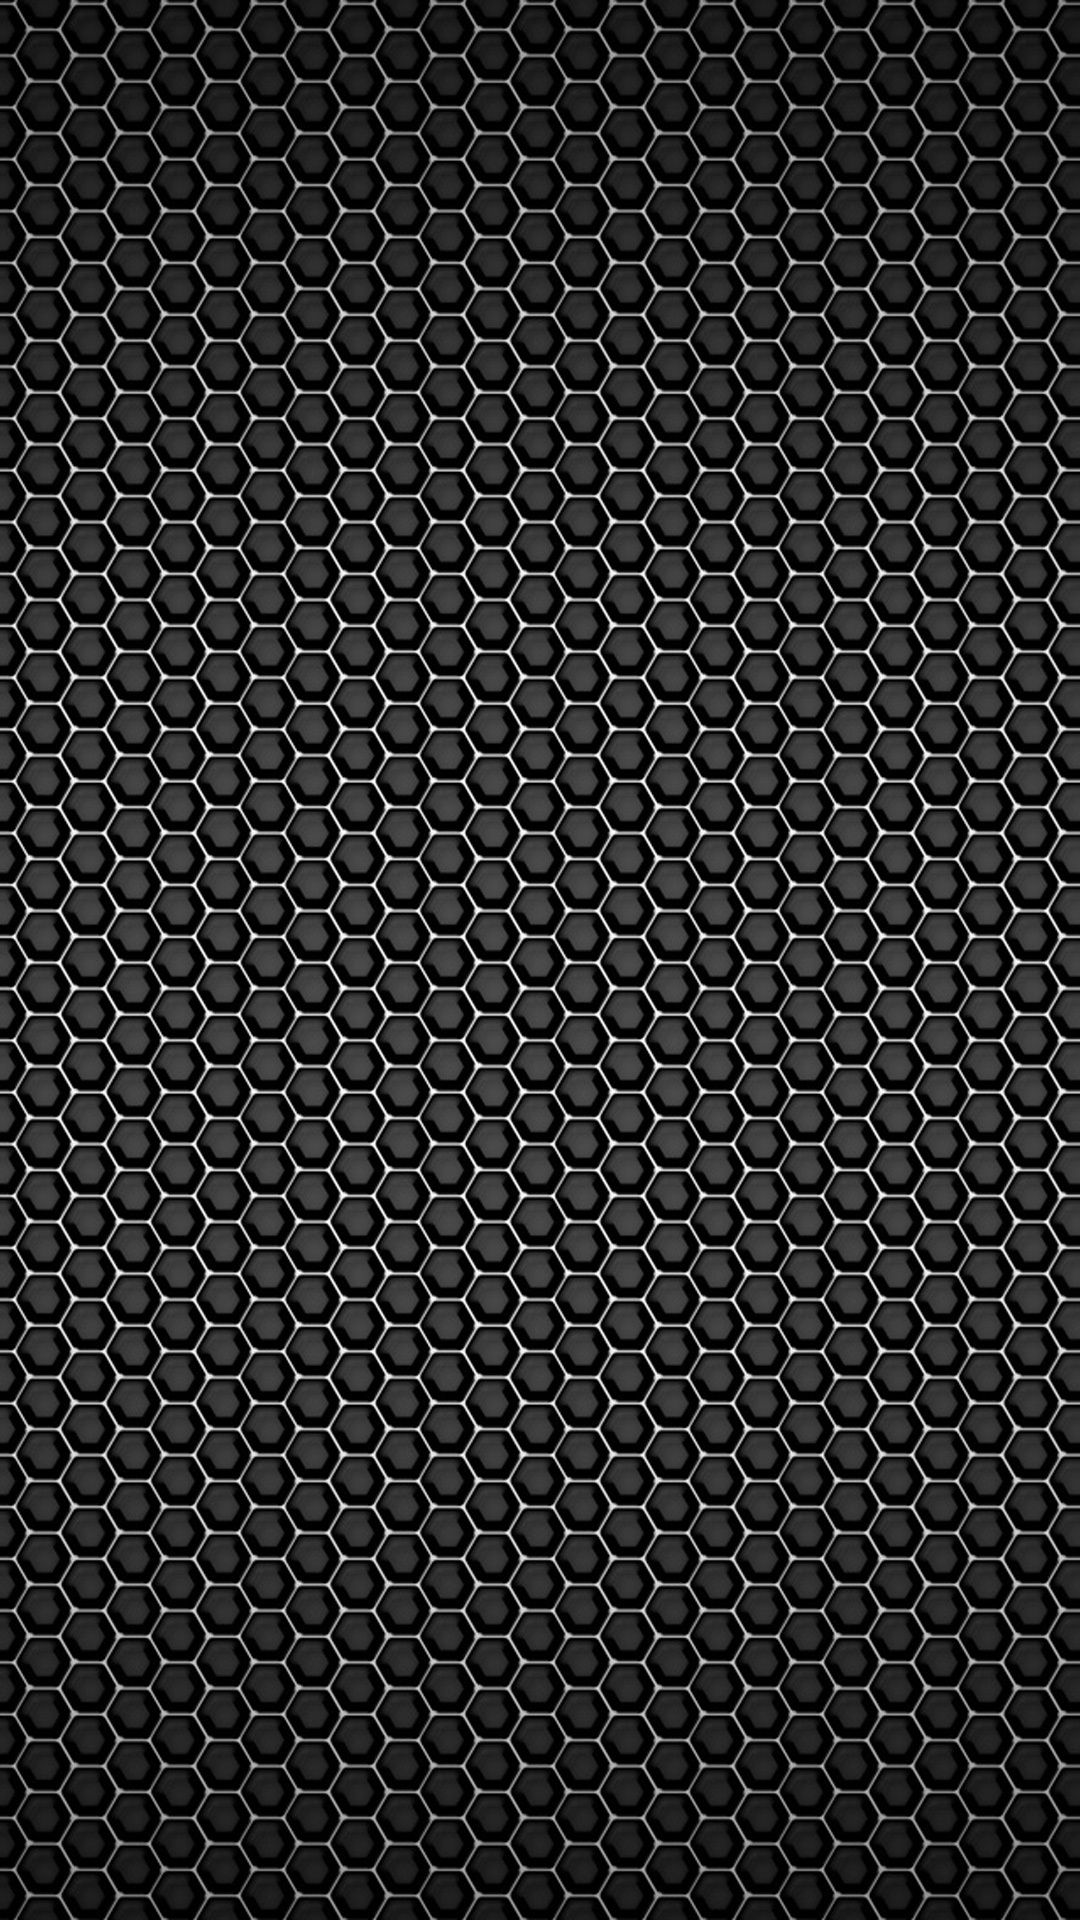 Iphone 6s Carbon Fiber Wallpaper Awesome Iphone 6s Wallpaper Hd 184 Check More At Http